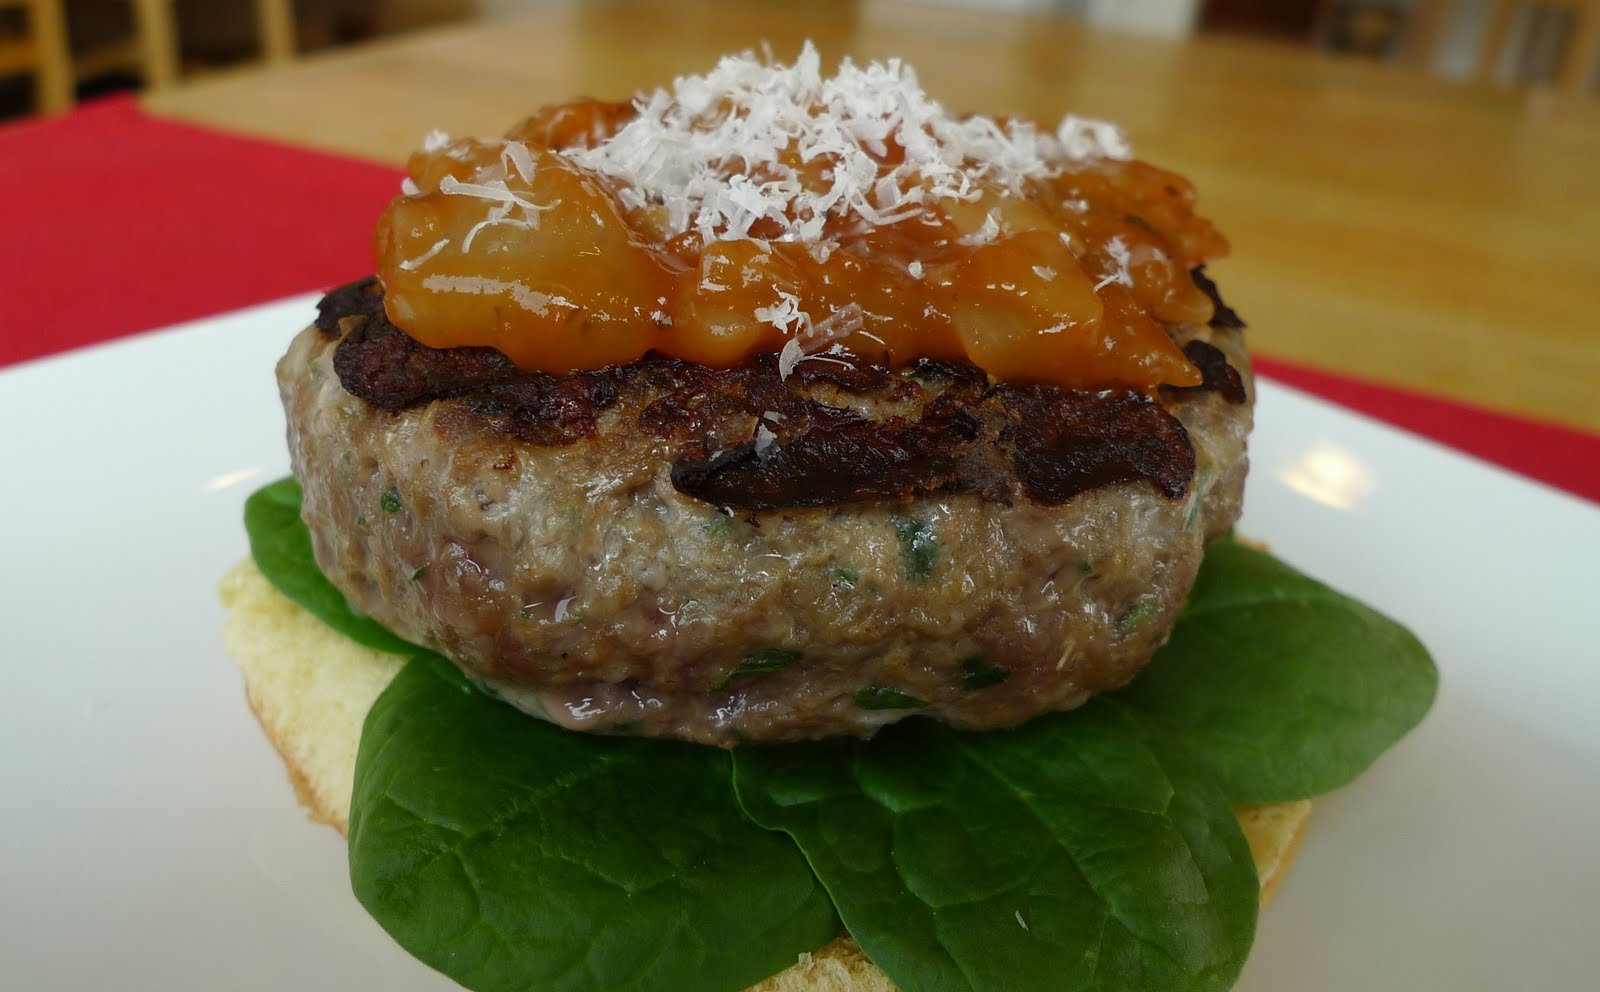 brazilian%2Bhamburgers%2B001 Brazilian Hamburgers* makes 4 1 pound lean ground beef